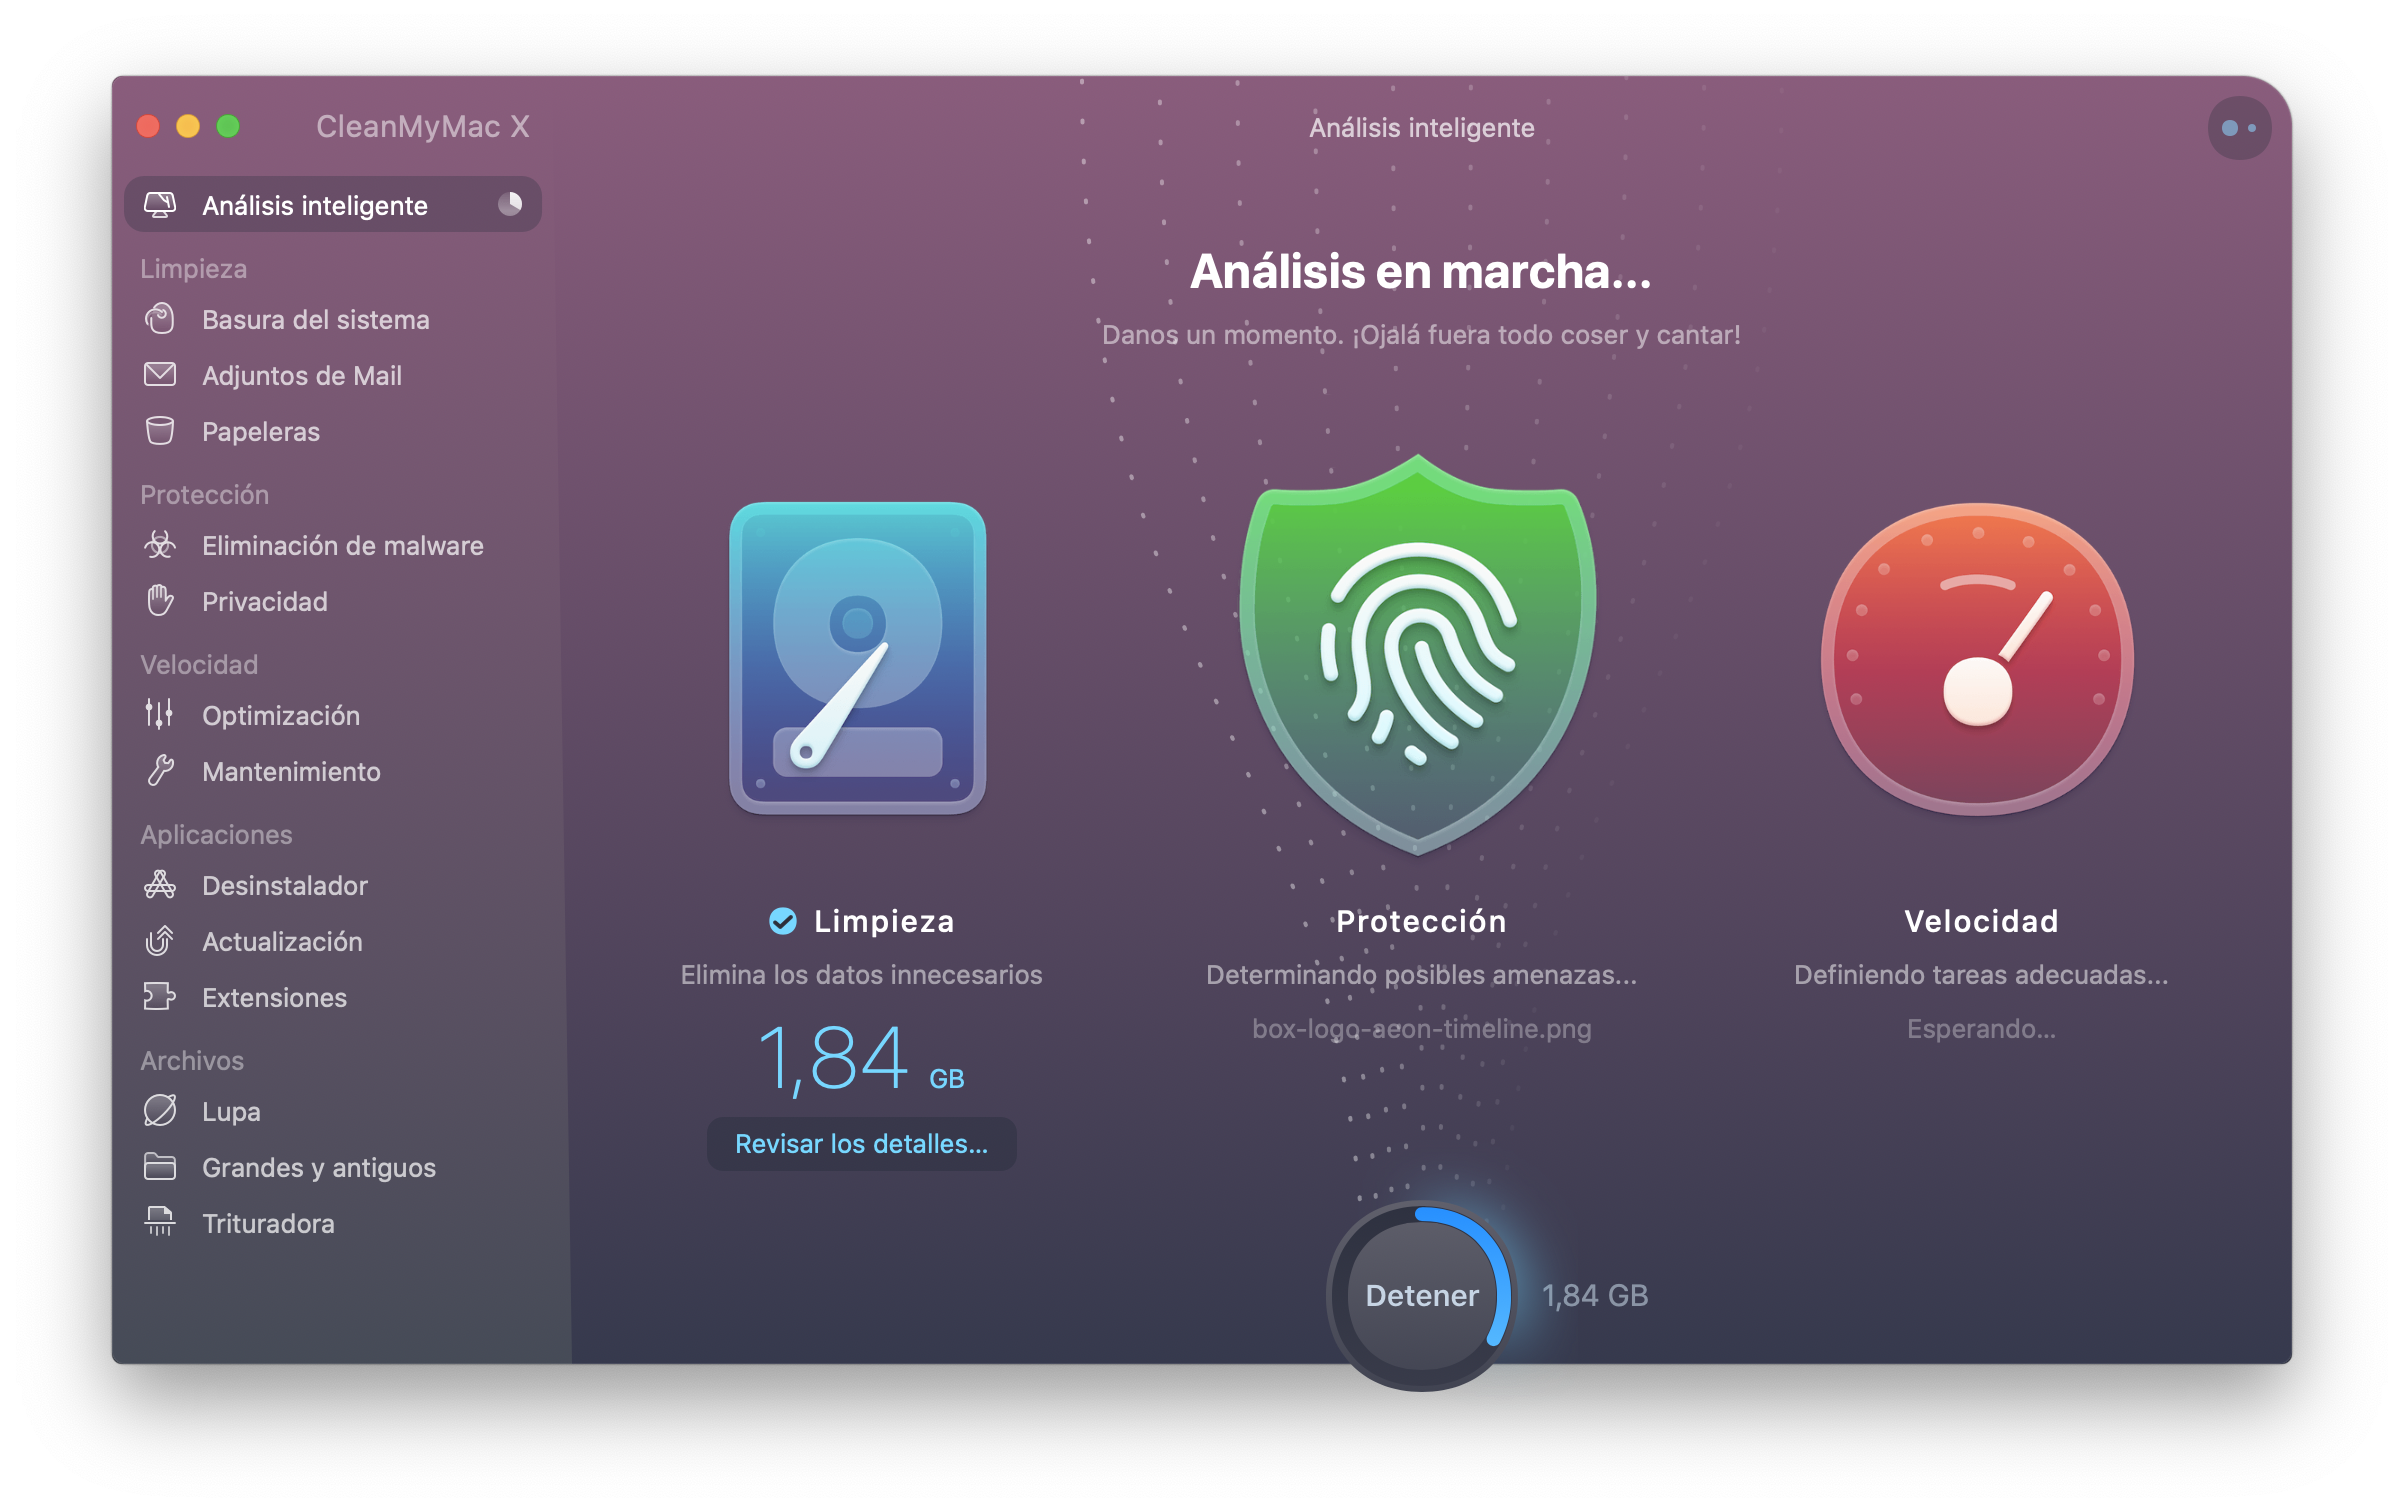 CleanMyMac X analisis inteligente